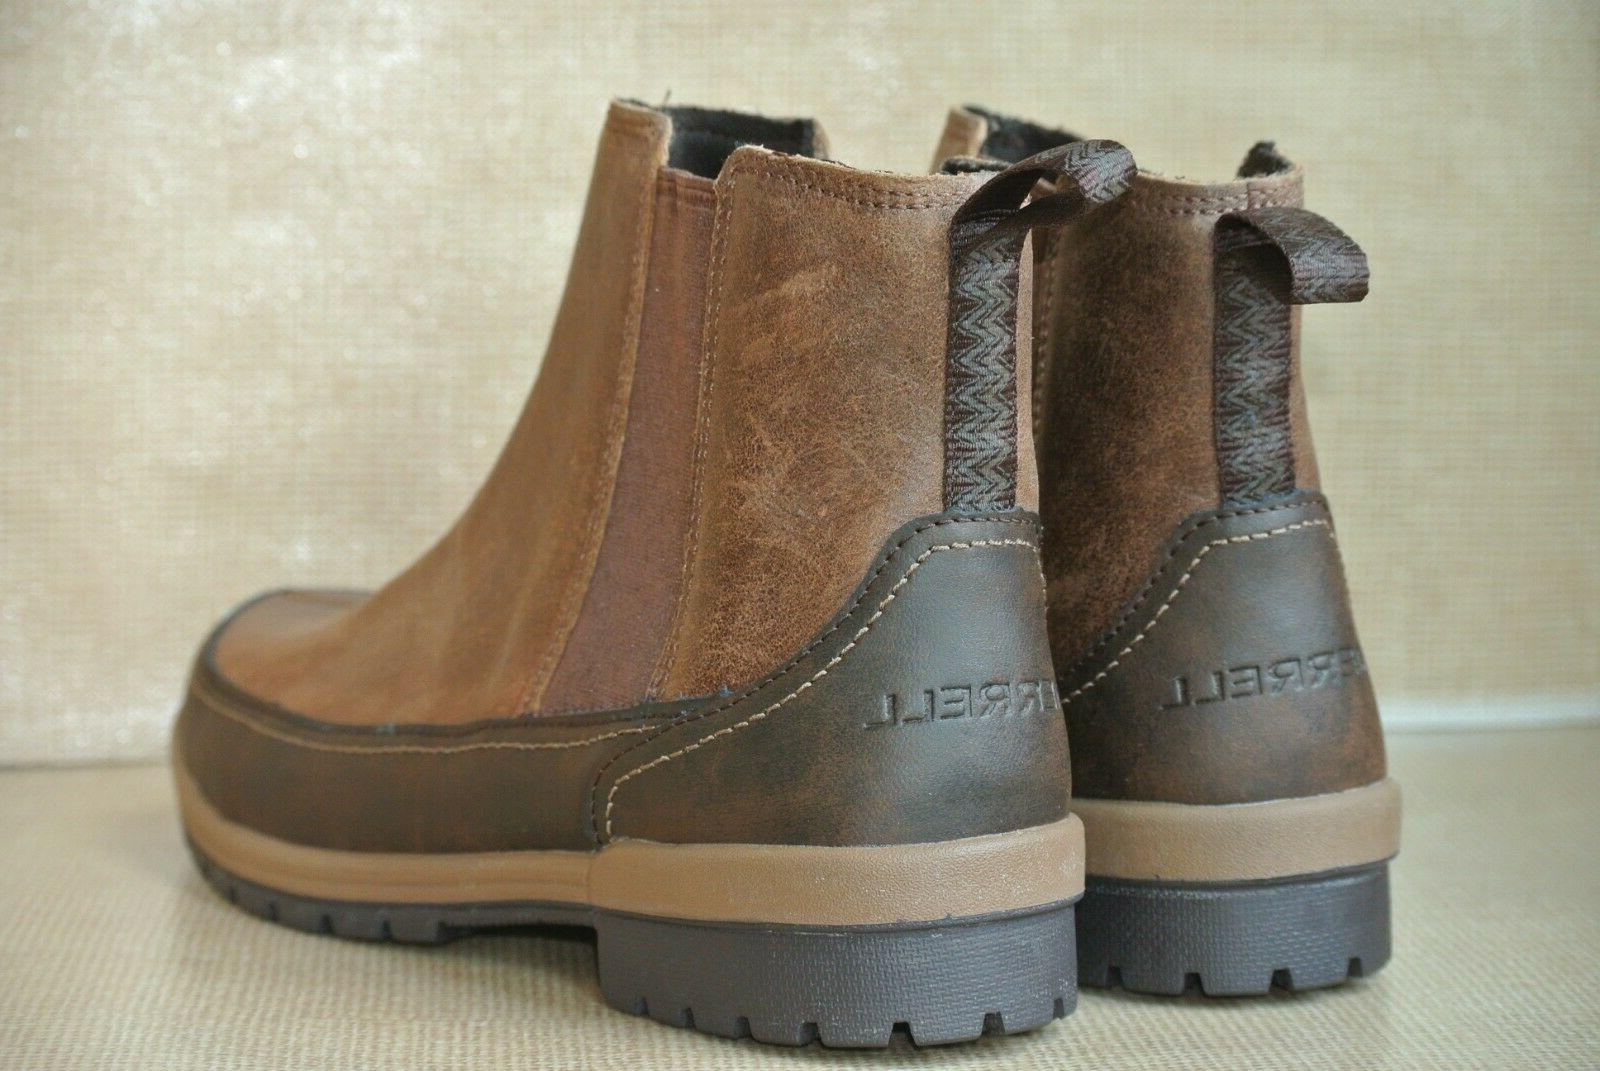 NEW 9.5 M Leather Winter Ankle Boots